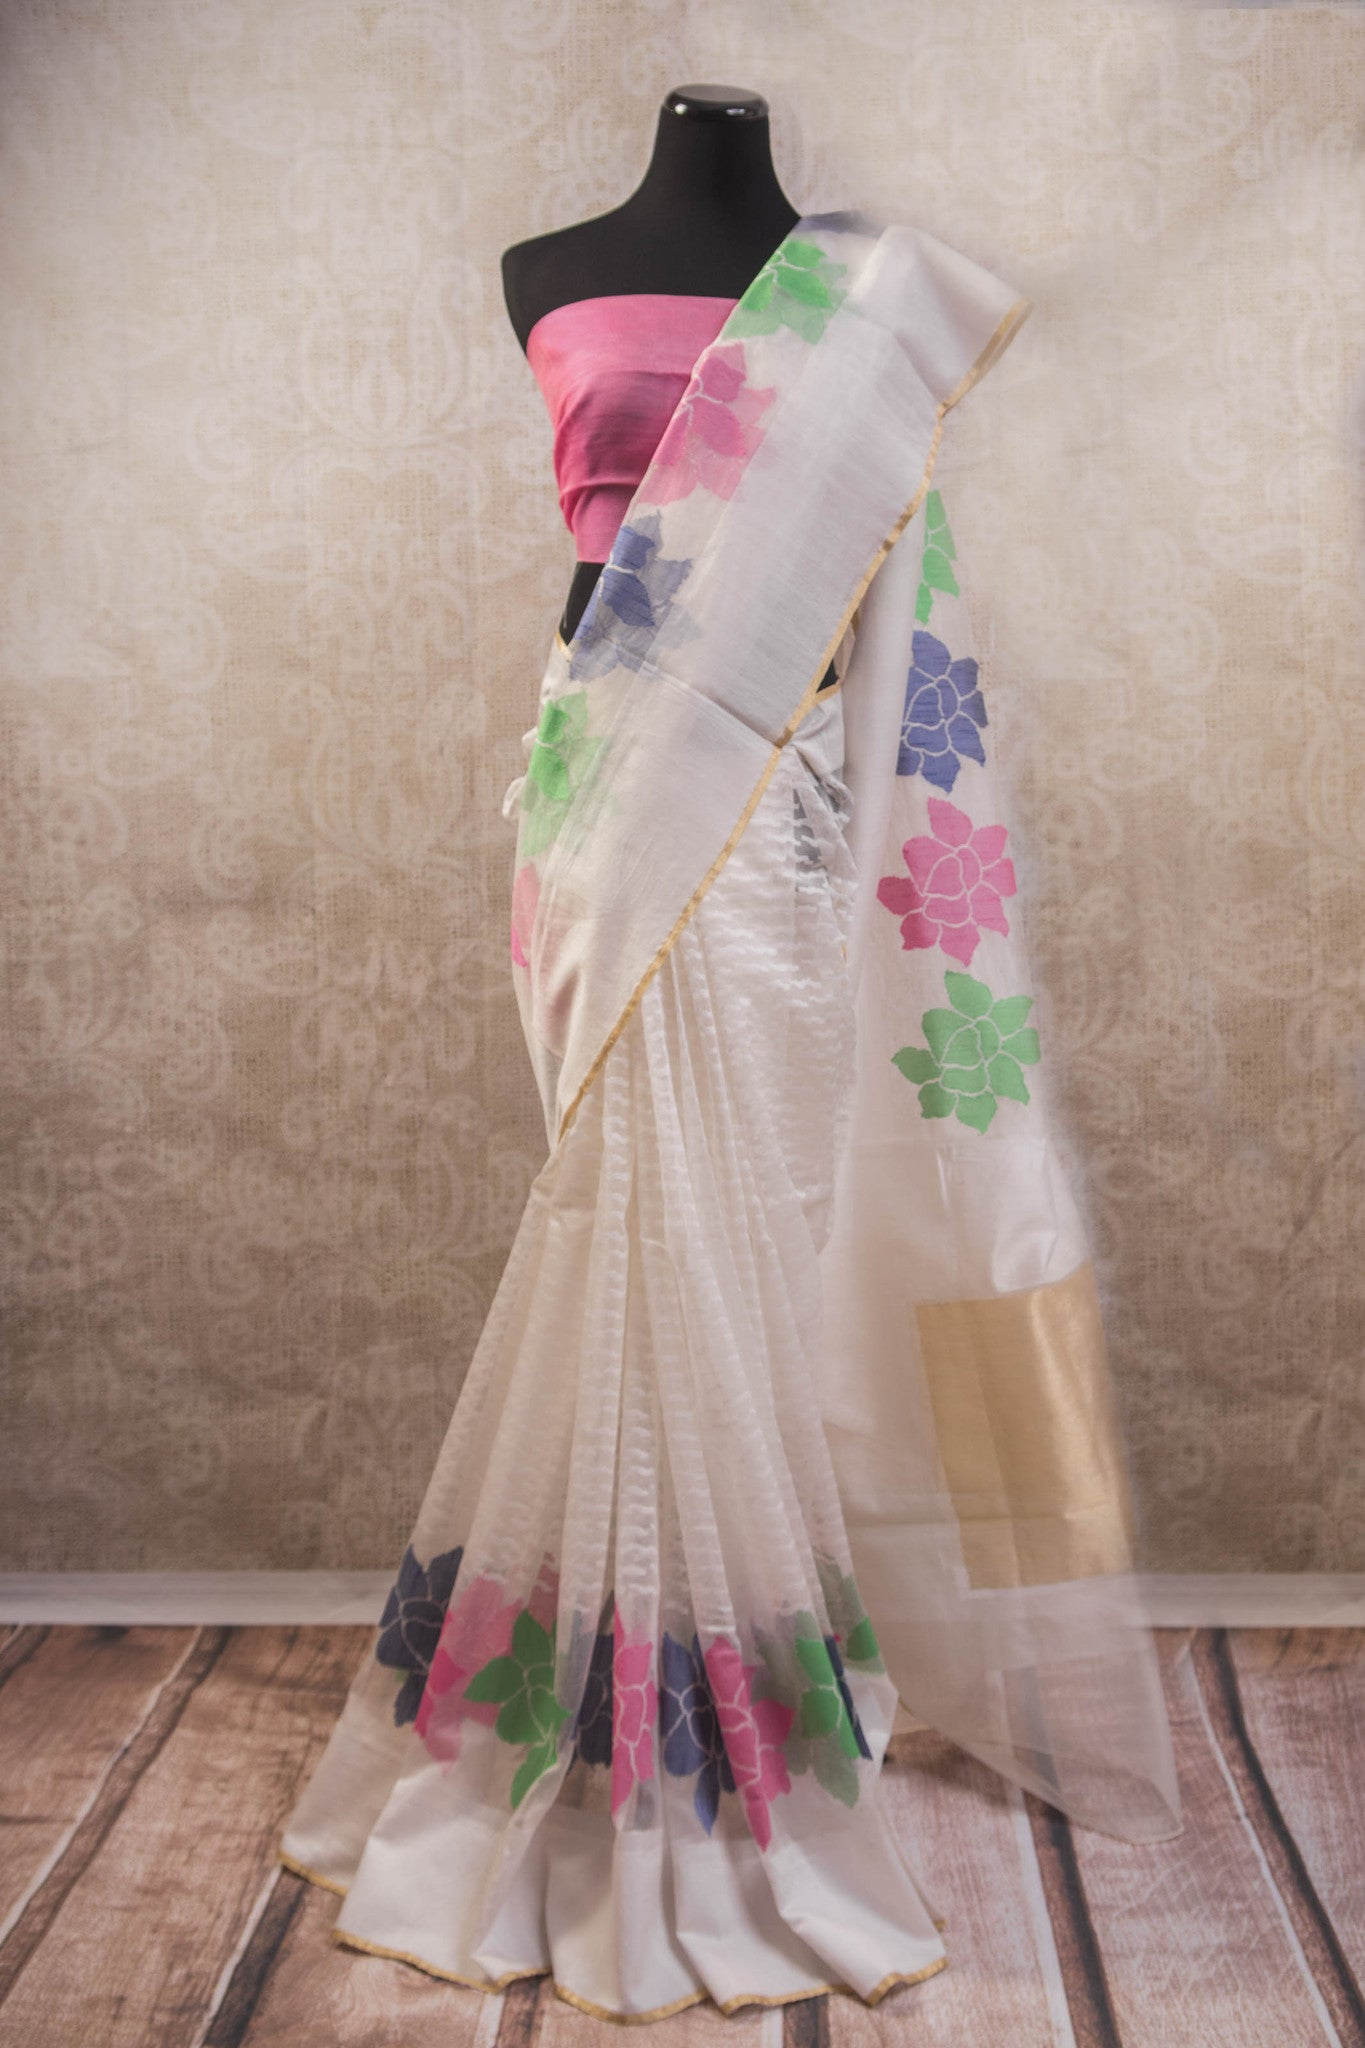 90b604 Buy this sheer white textured jute Banarasi saree online at Pure Elegance. The floral saree comes with a pink blouse & is a great Indian outfit to wear at parties and ethnic functions. This charming Indian saree is something you'll love having in your ethnic wear wardrobe for years to come!